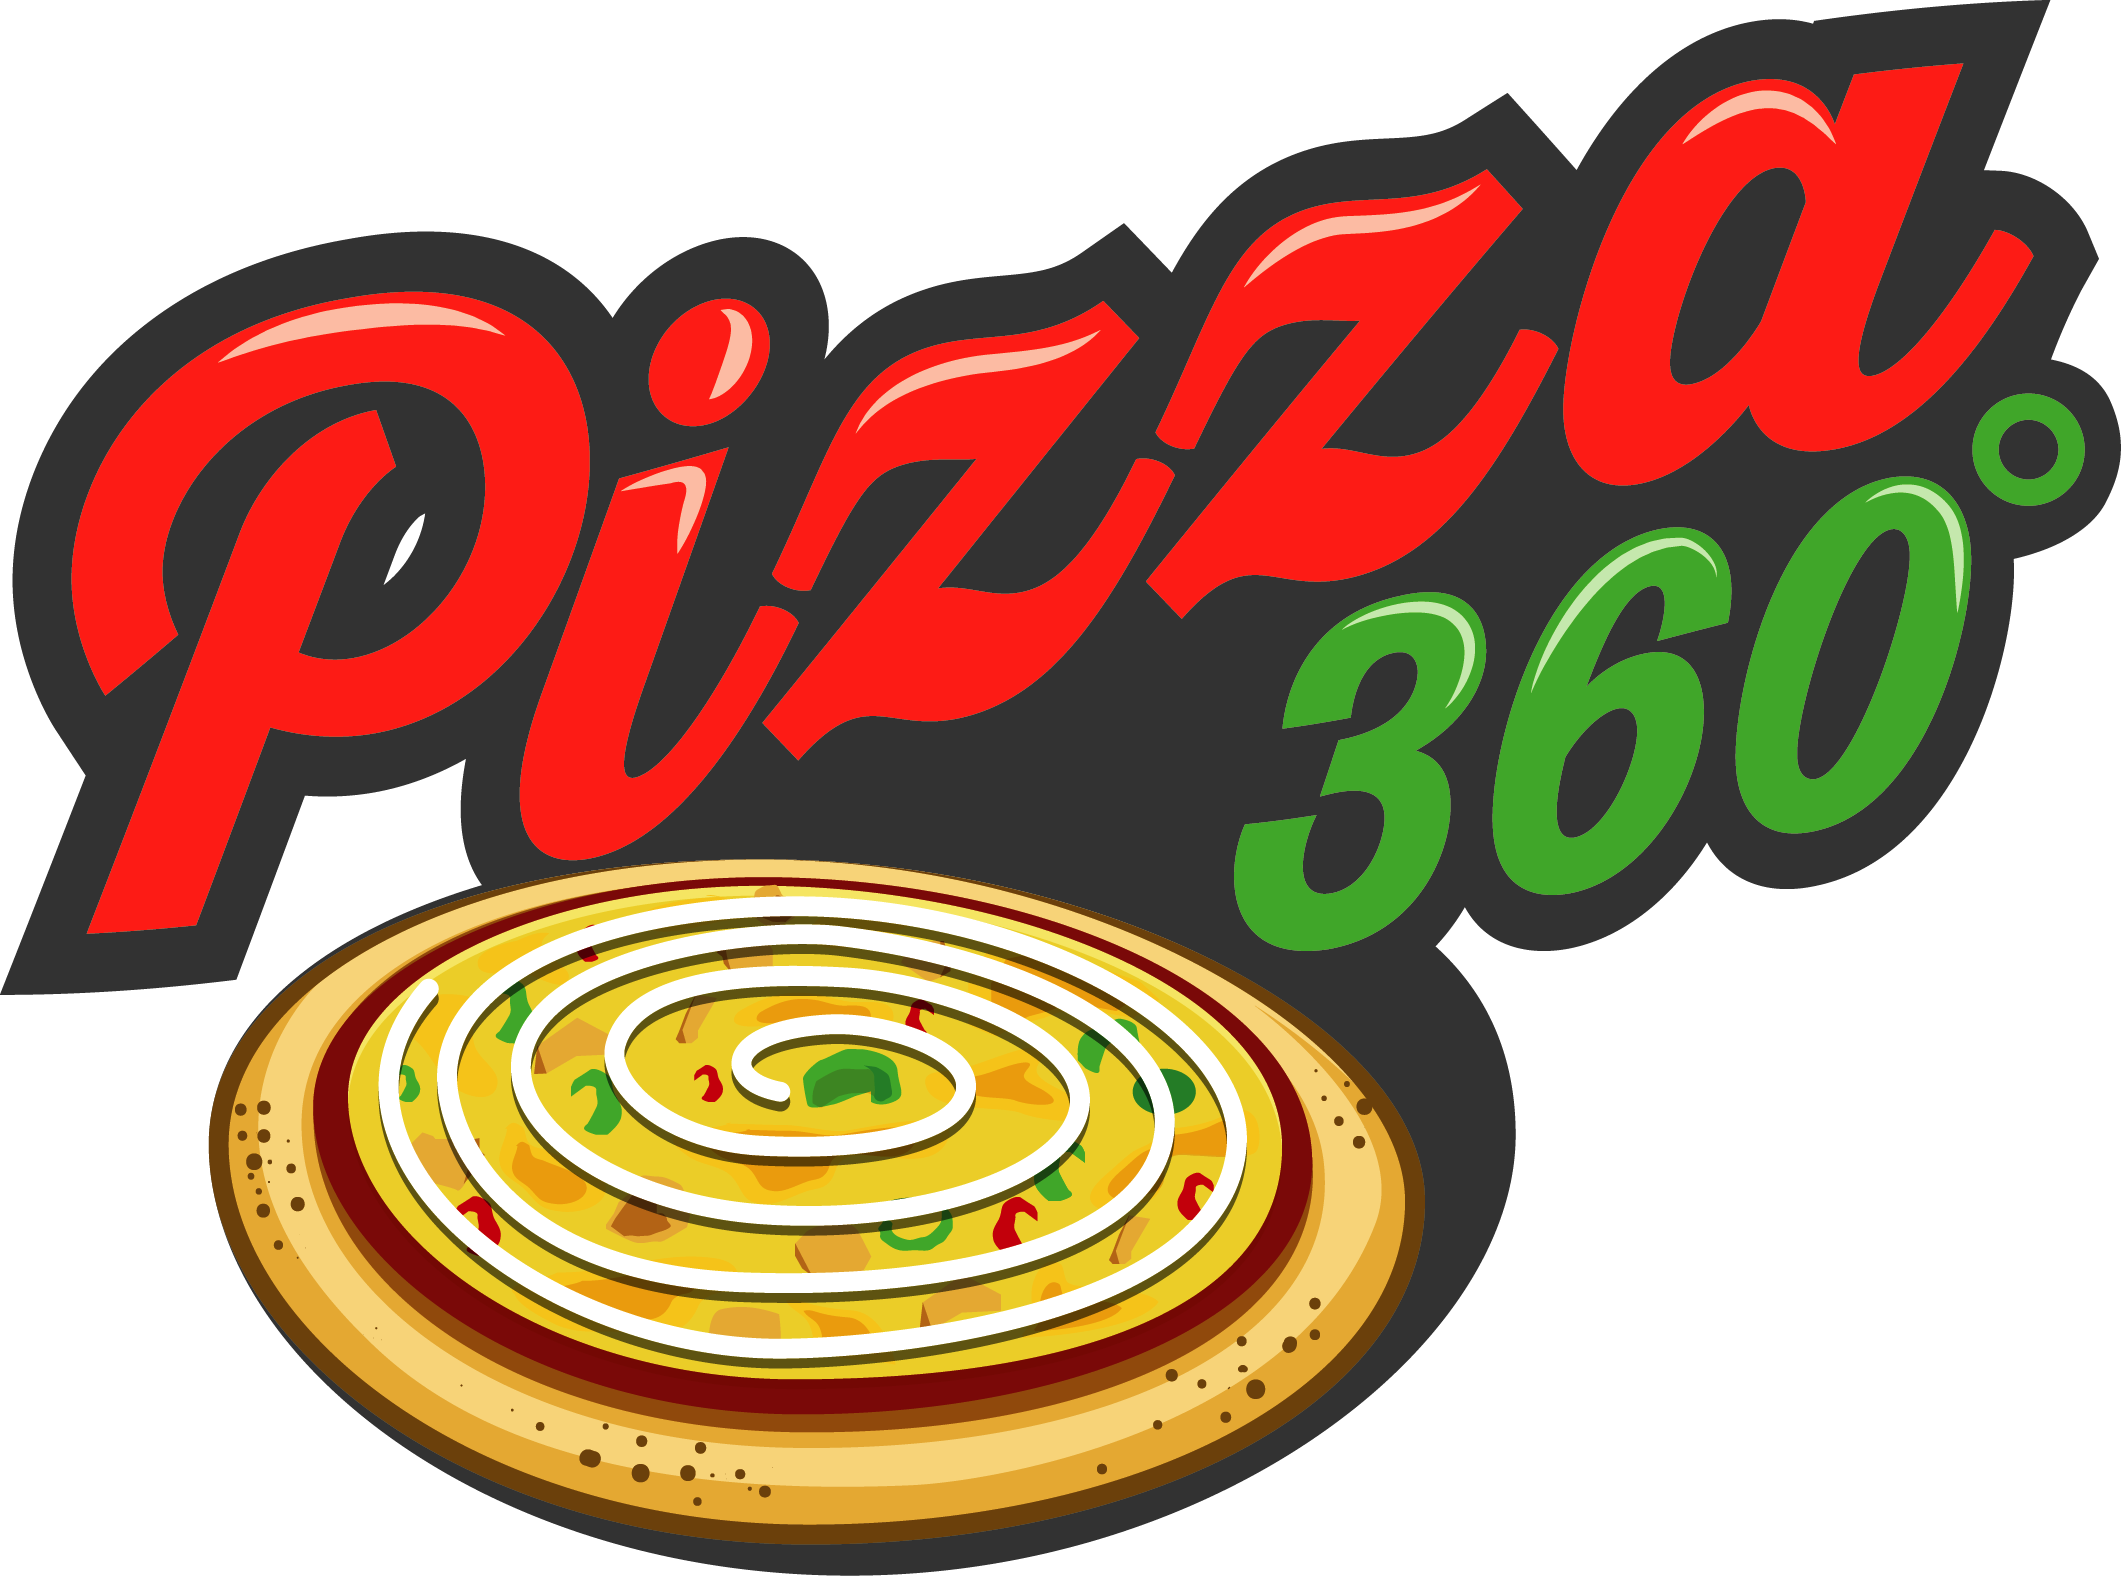 Pizza clipart top view. Home